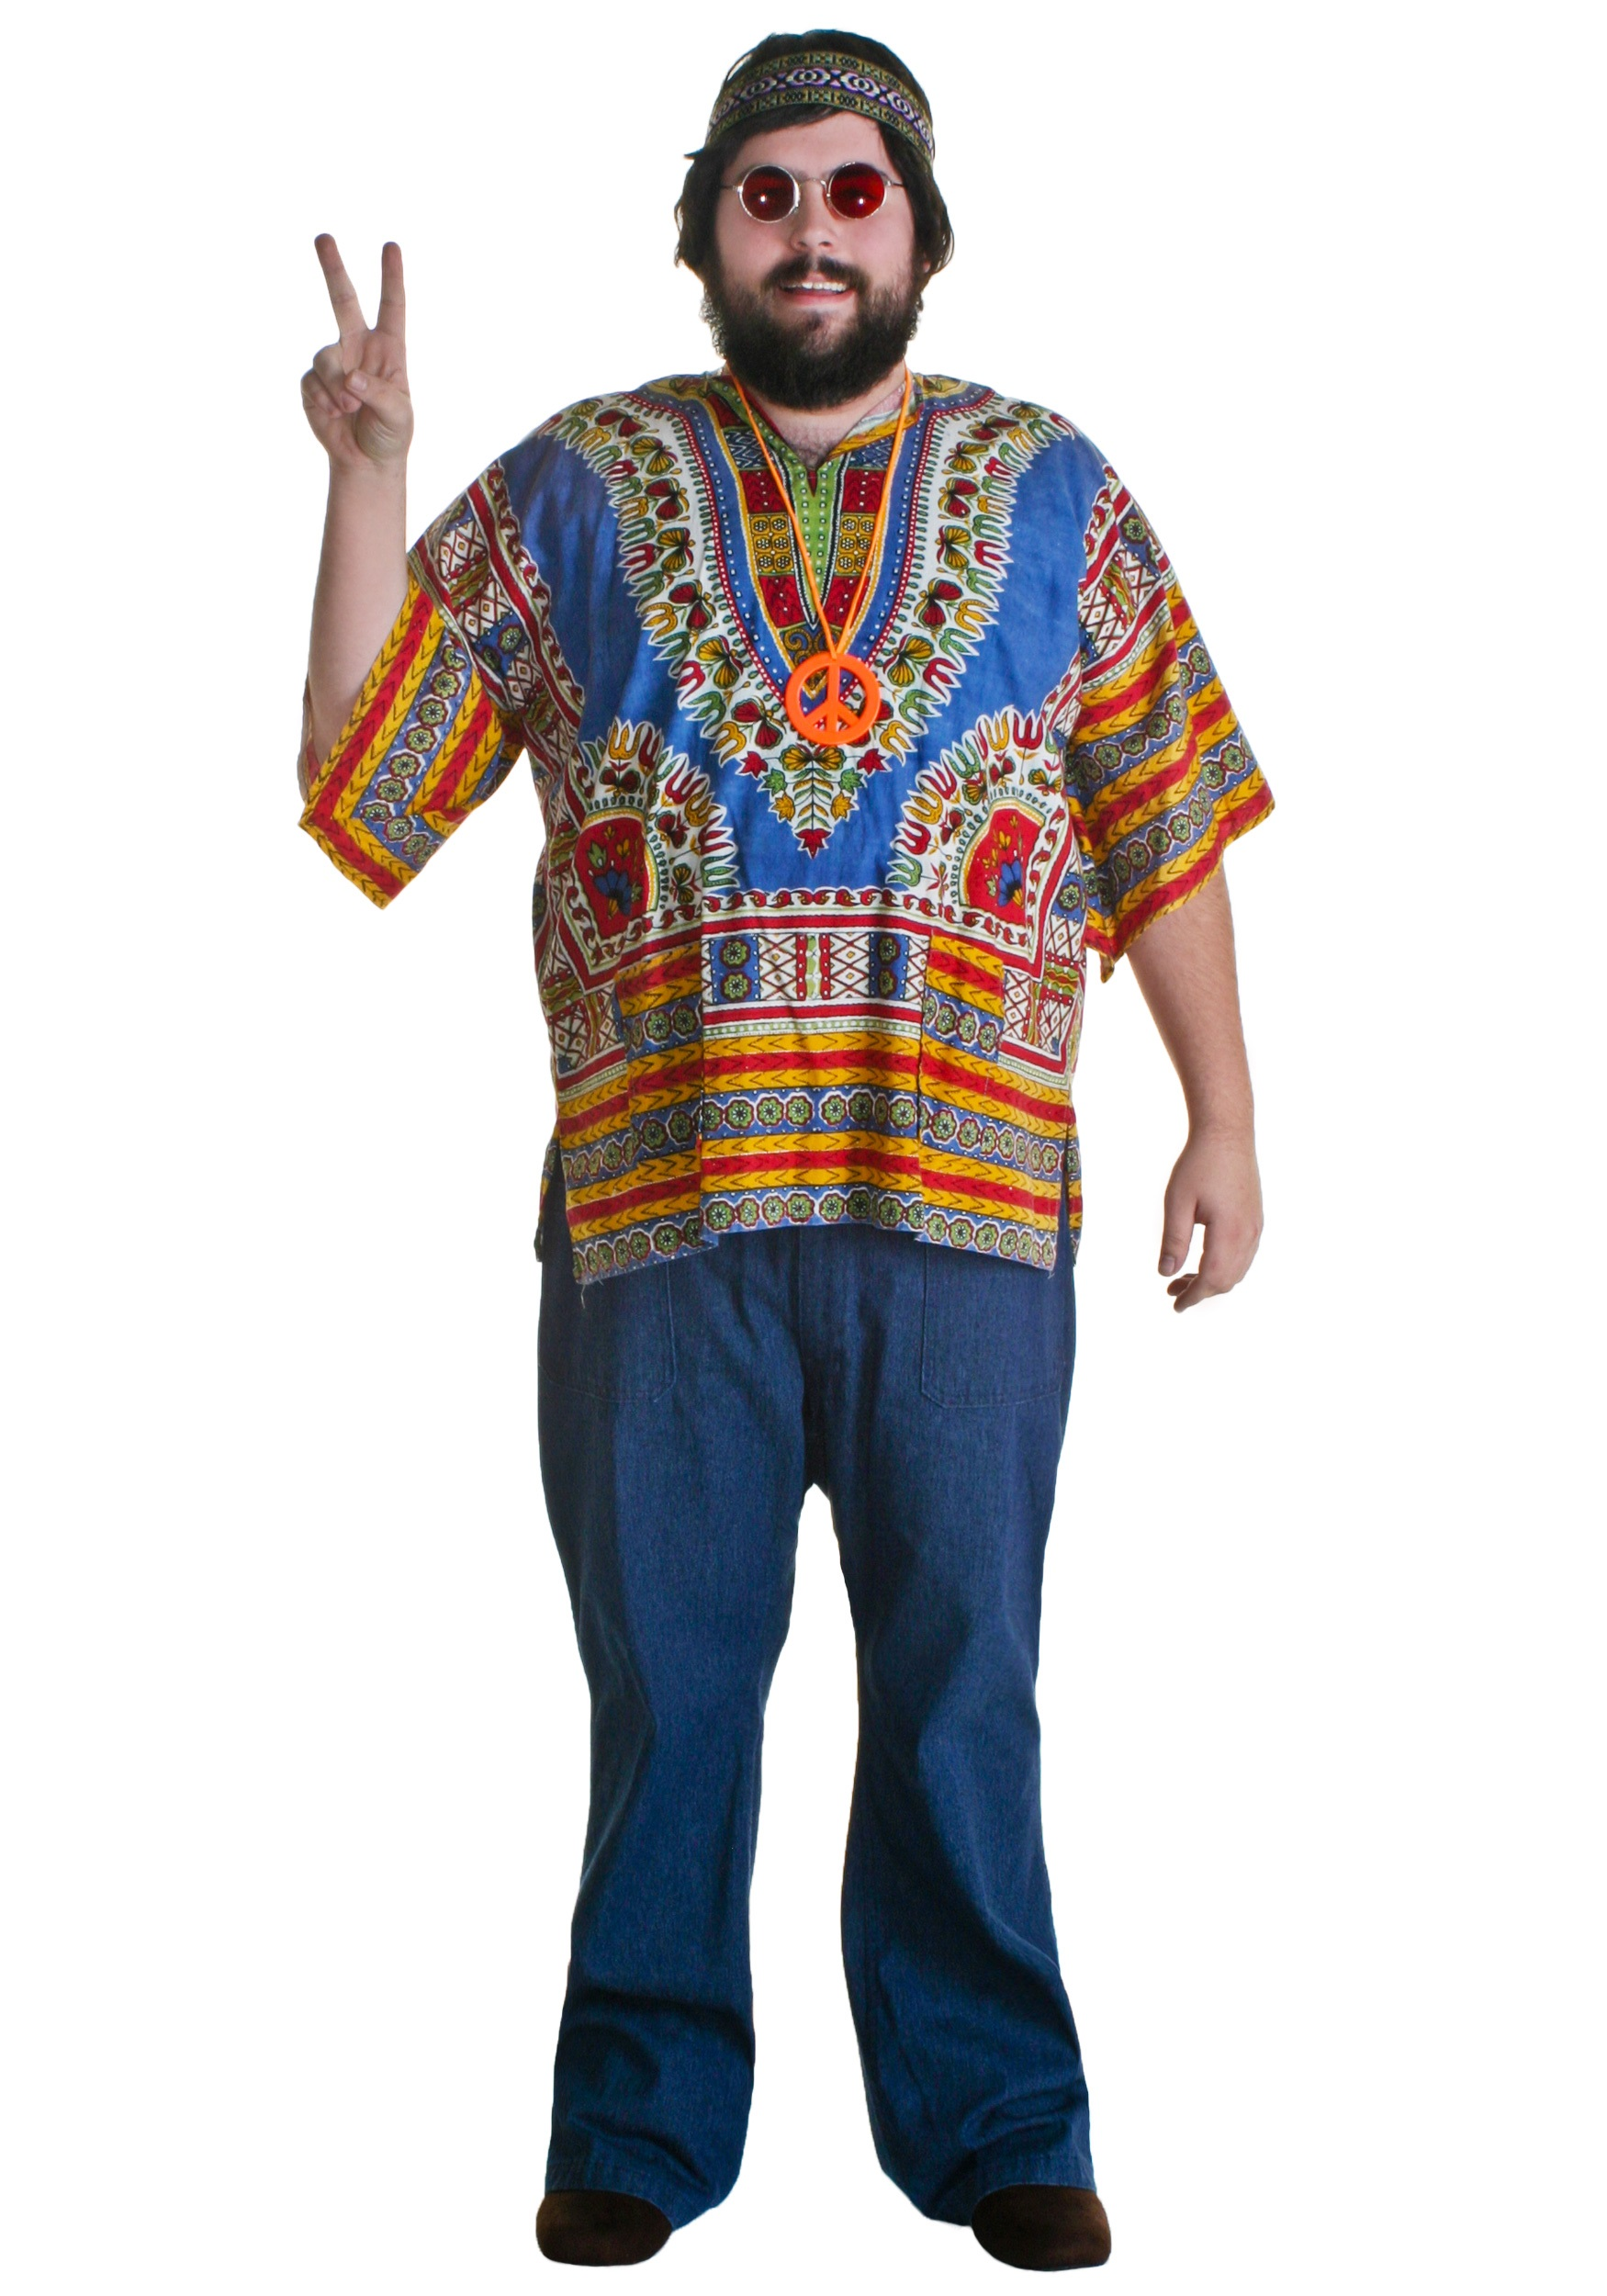 Christmas gown ideas 70s halloween - 60s Hippie Guy Costume